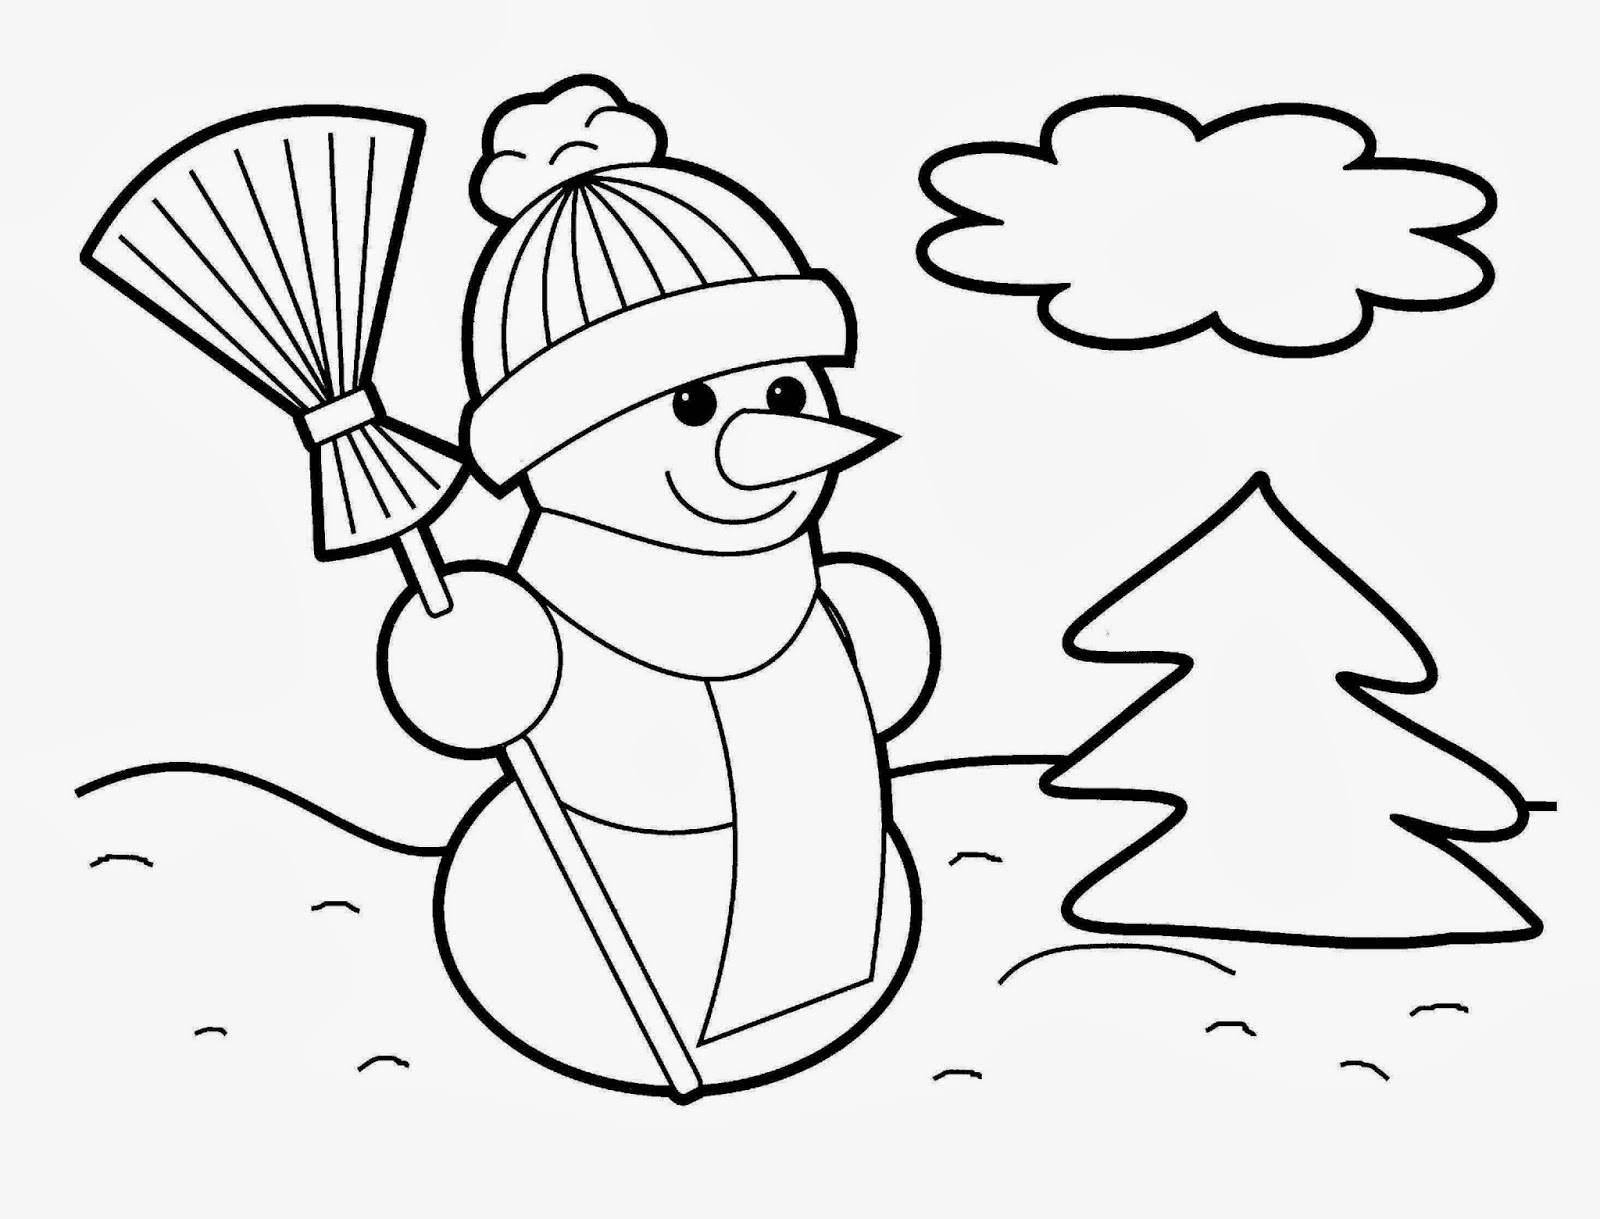 Coloring pages for xmas stockings - Coloring Pages For Xmas Stockings 51